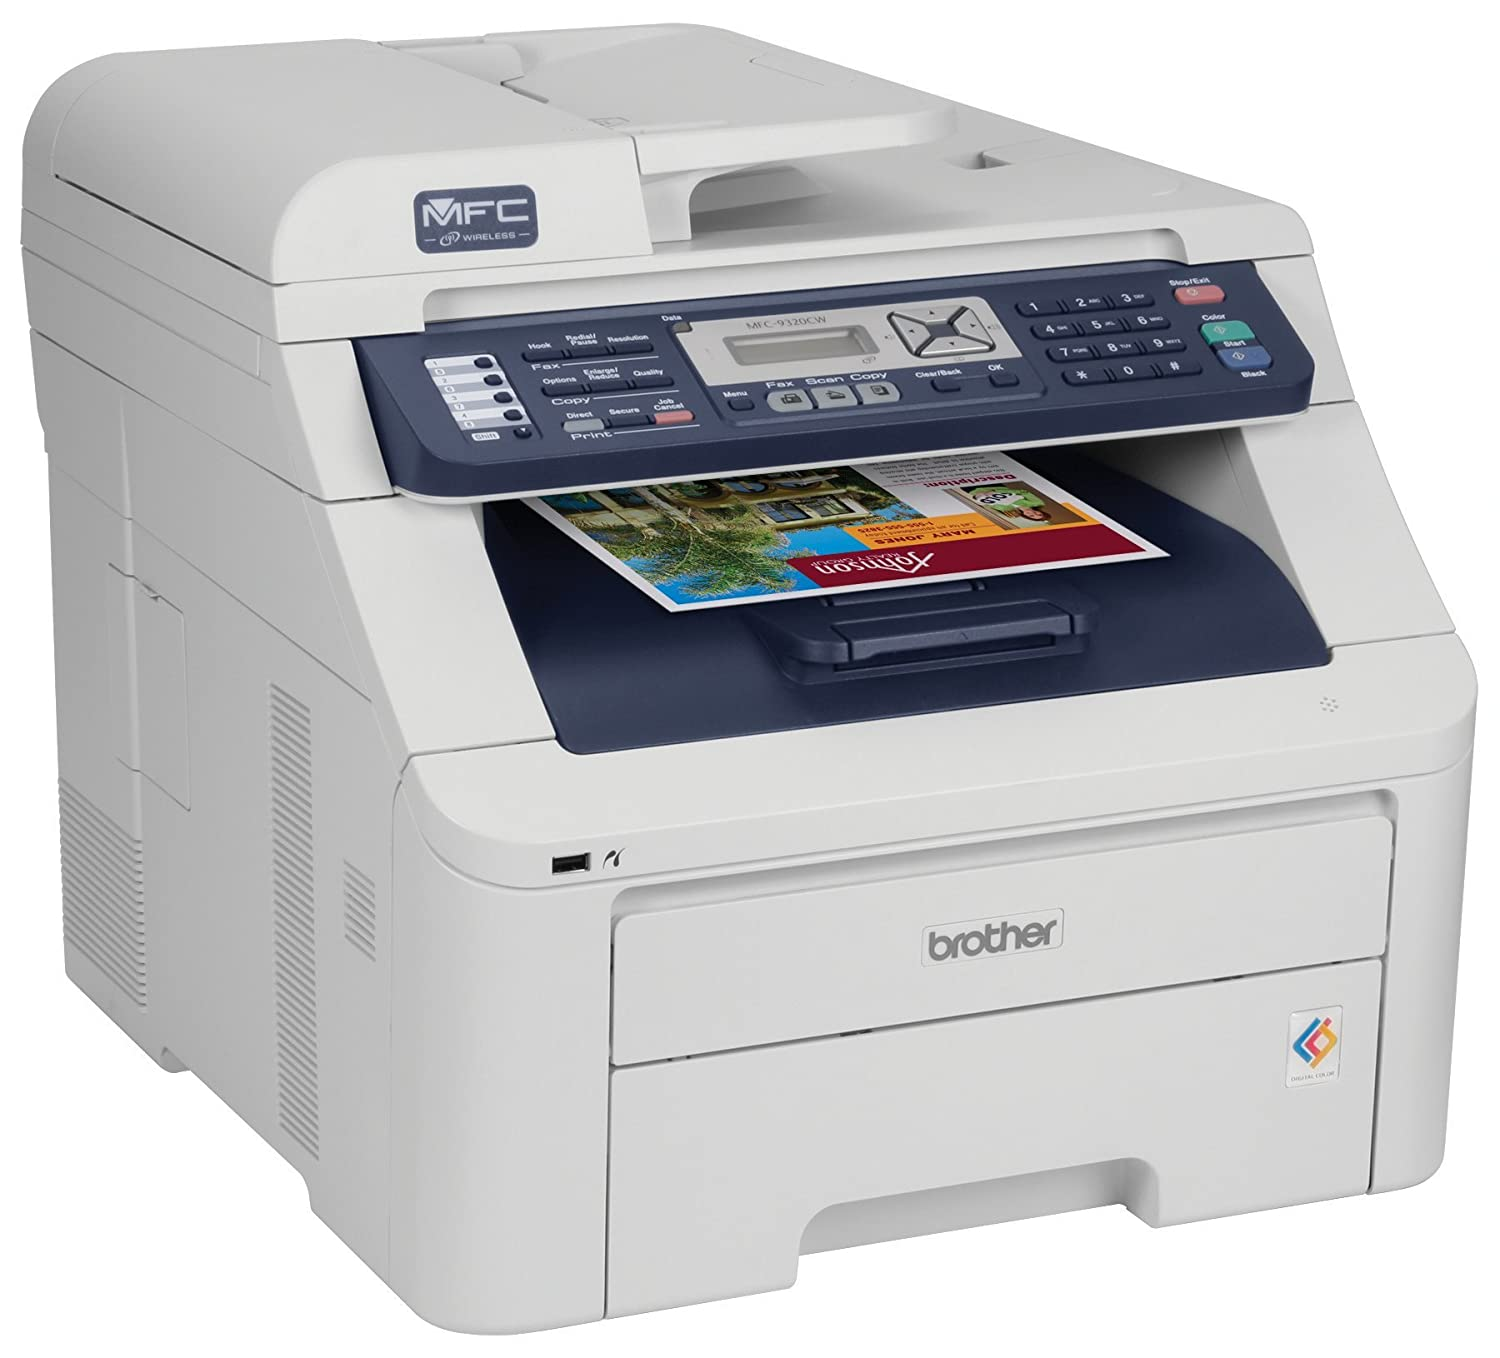 Brother MFC-210C CUPS Printer Driver for Windows Mac